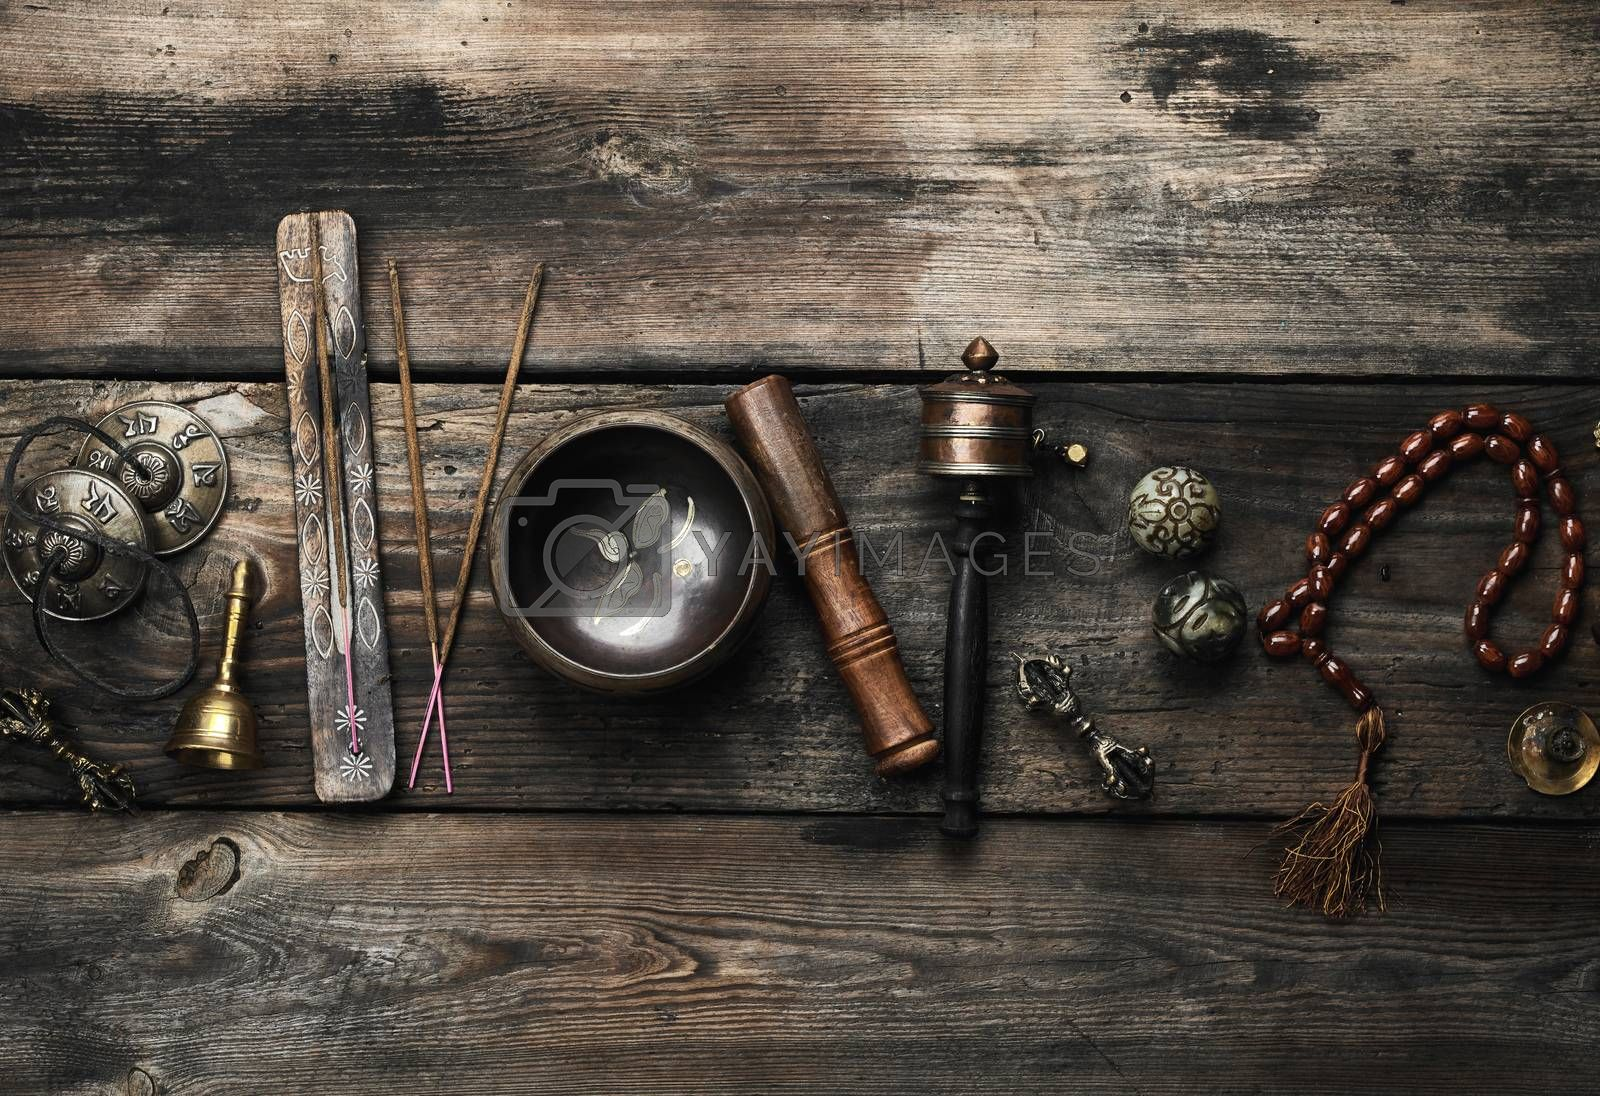 Copper singing bowl, prayer beads, prayer drum and other Tibetan religious objects for meditation and alternative medicine on a brown wooden background, copy space